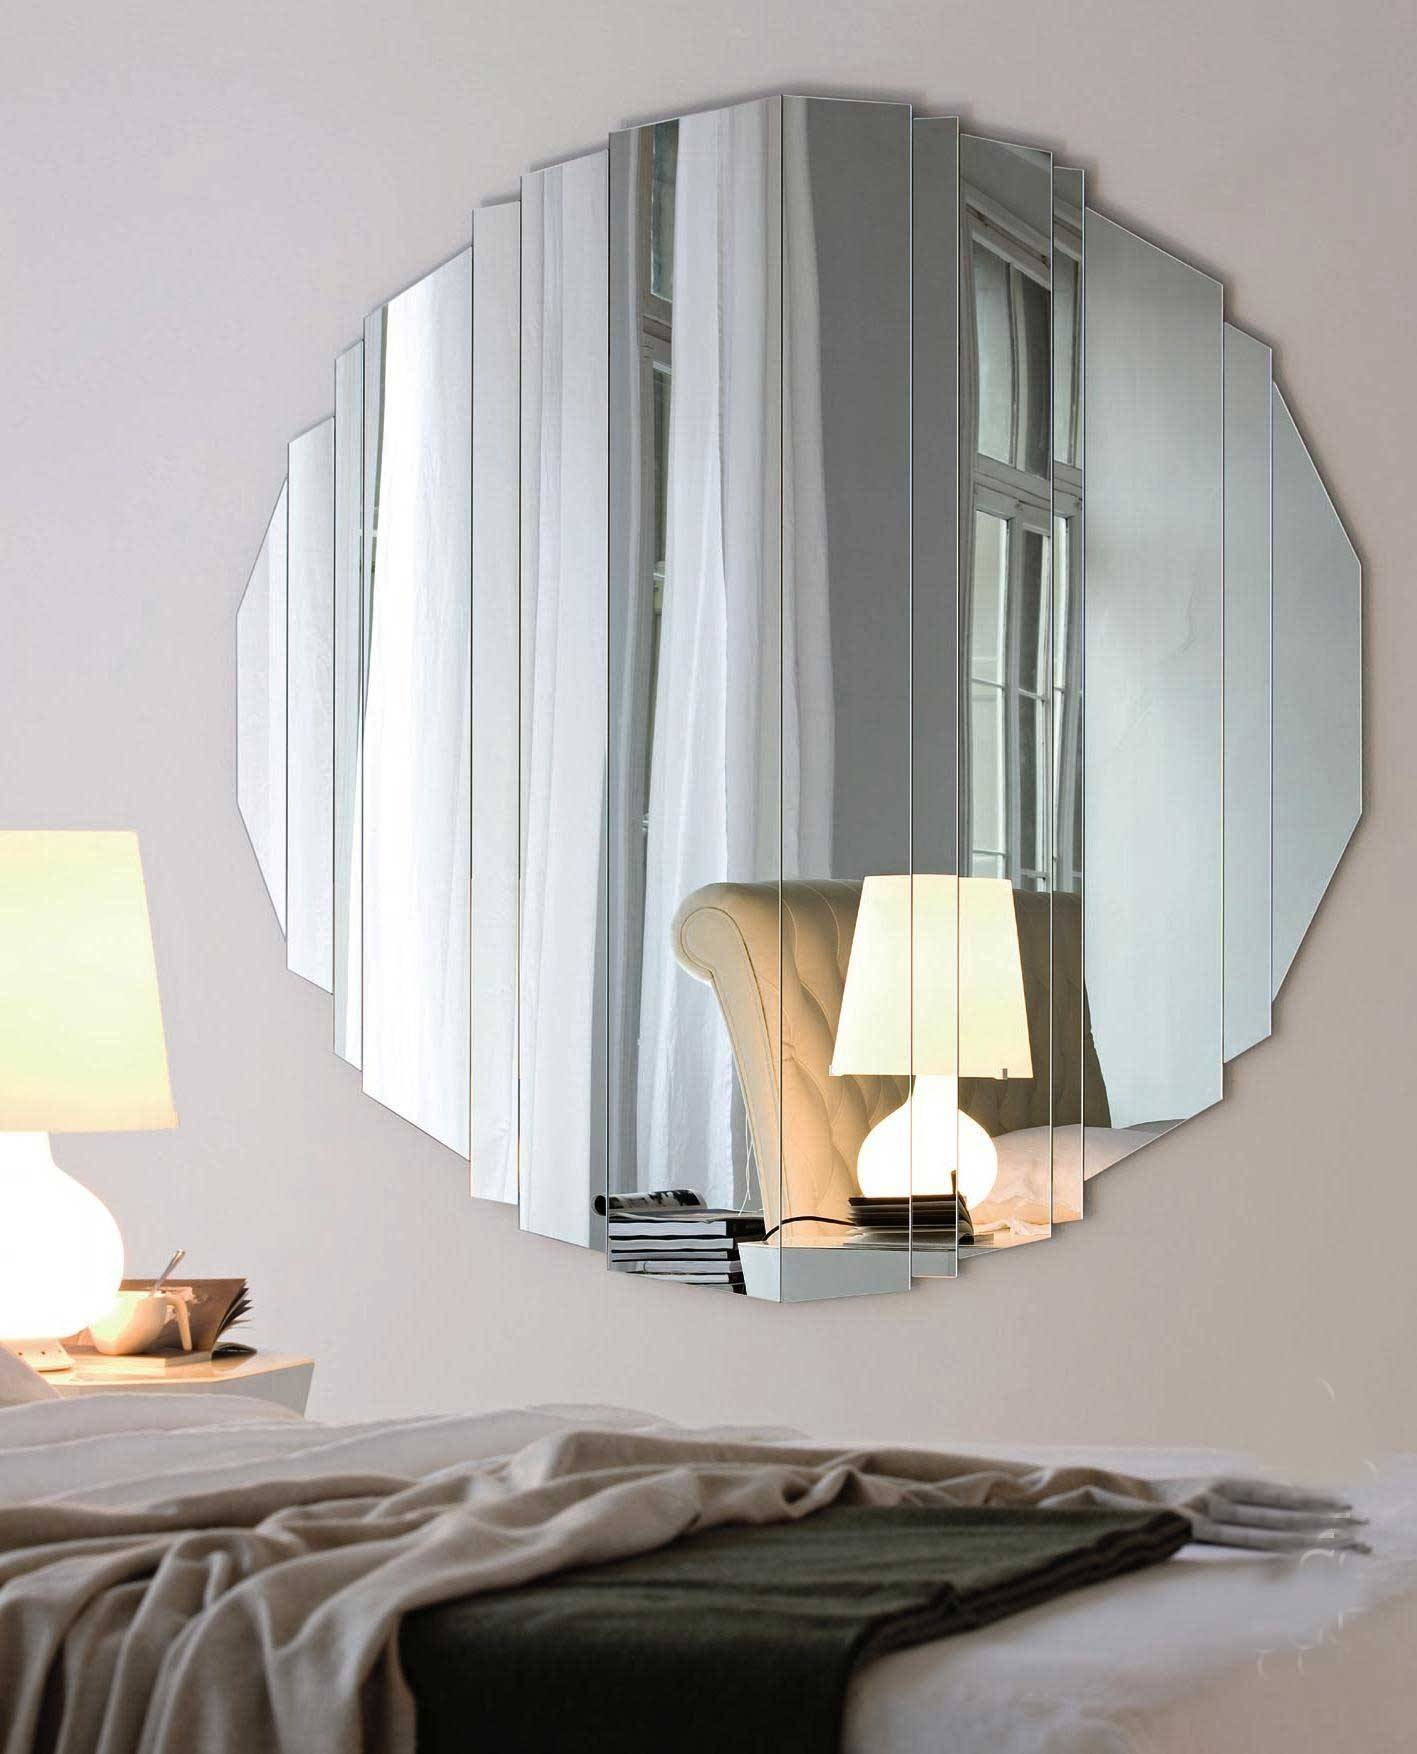 28+ [ Mirror Design ] | Mirrors,photos Jessica Mcclintock Couture intended for Unusual Round Mirrors (Image 2 of 25)